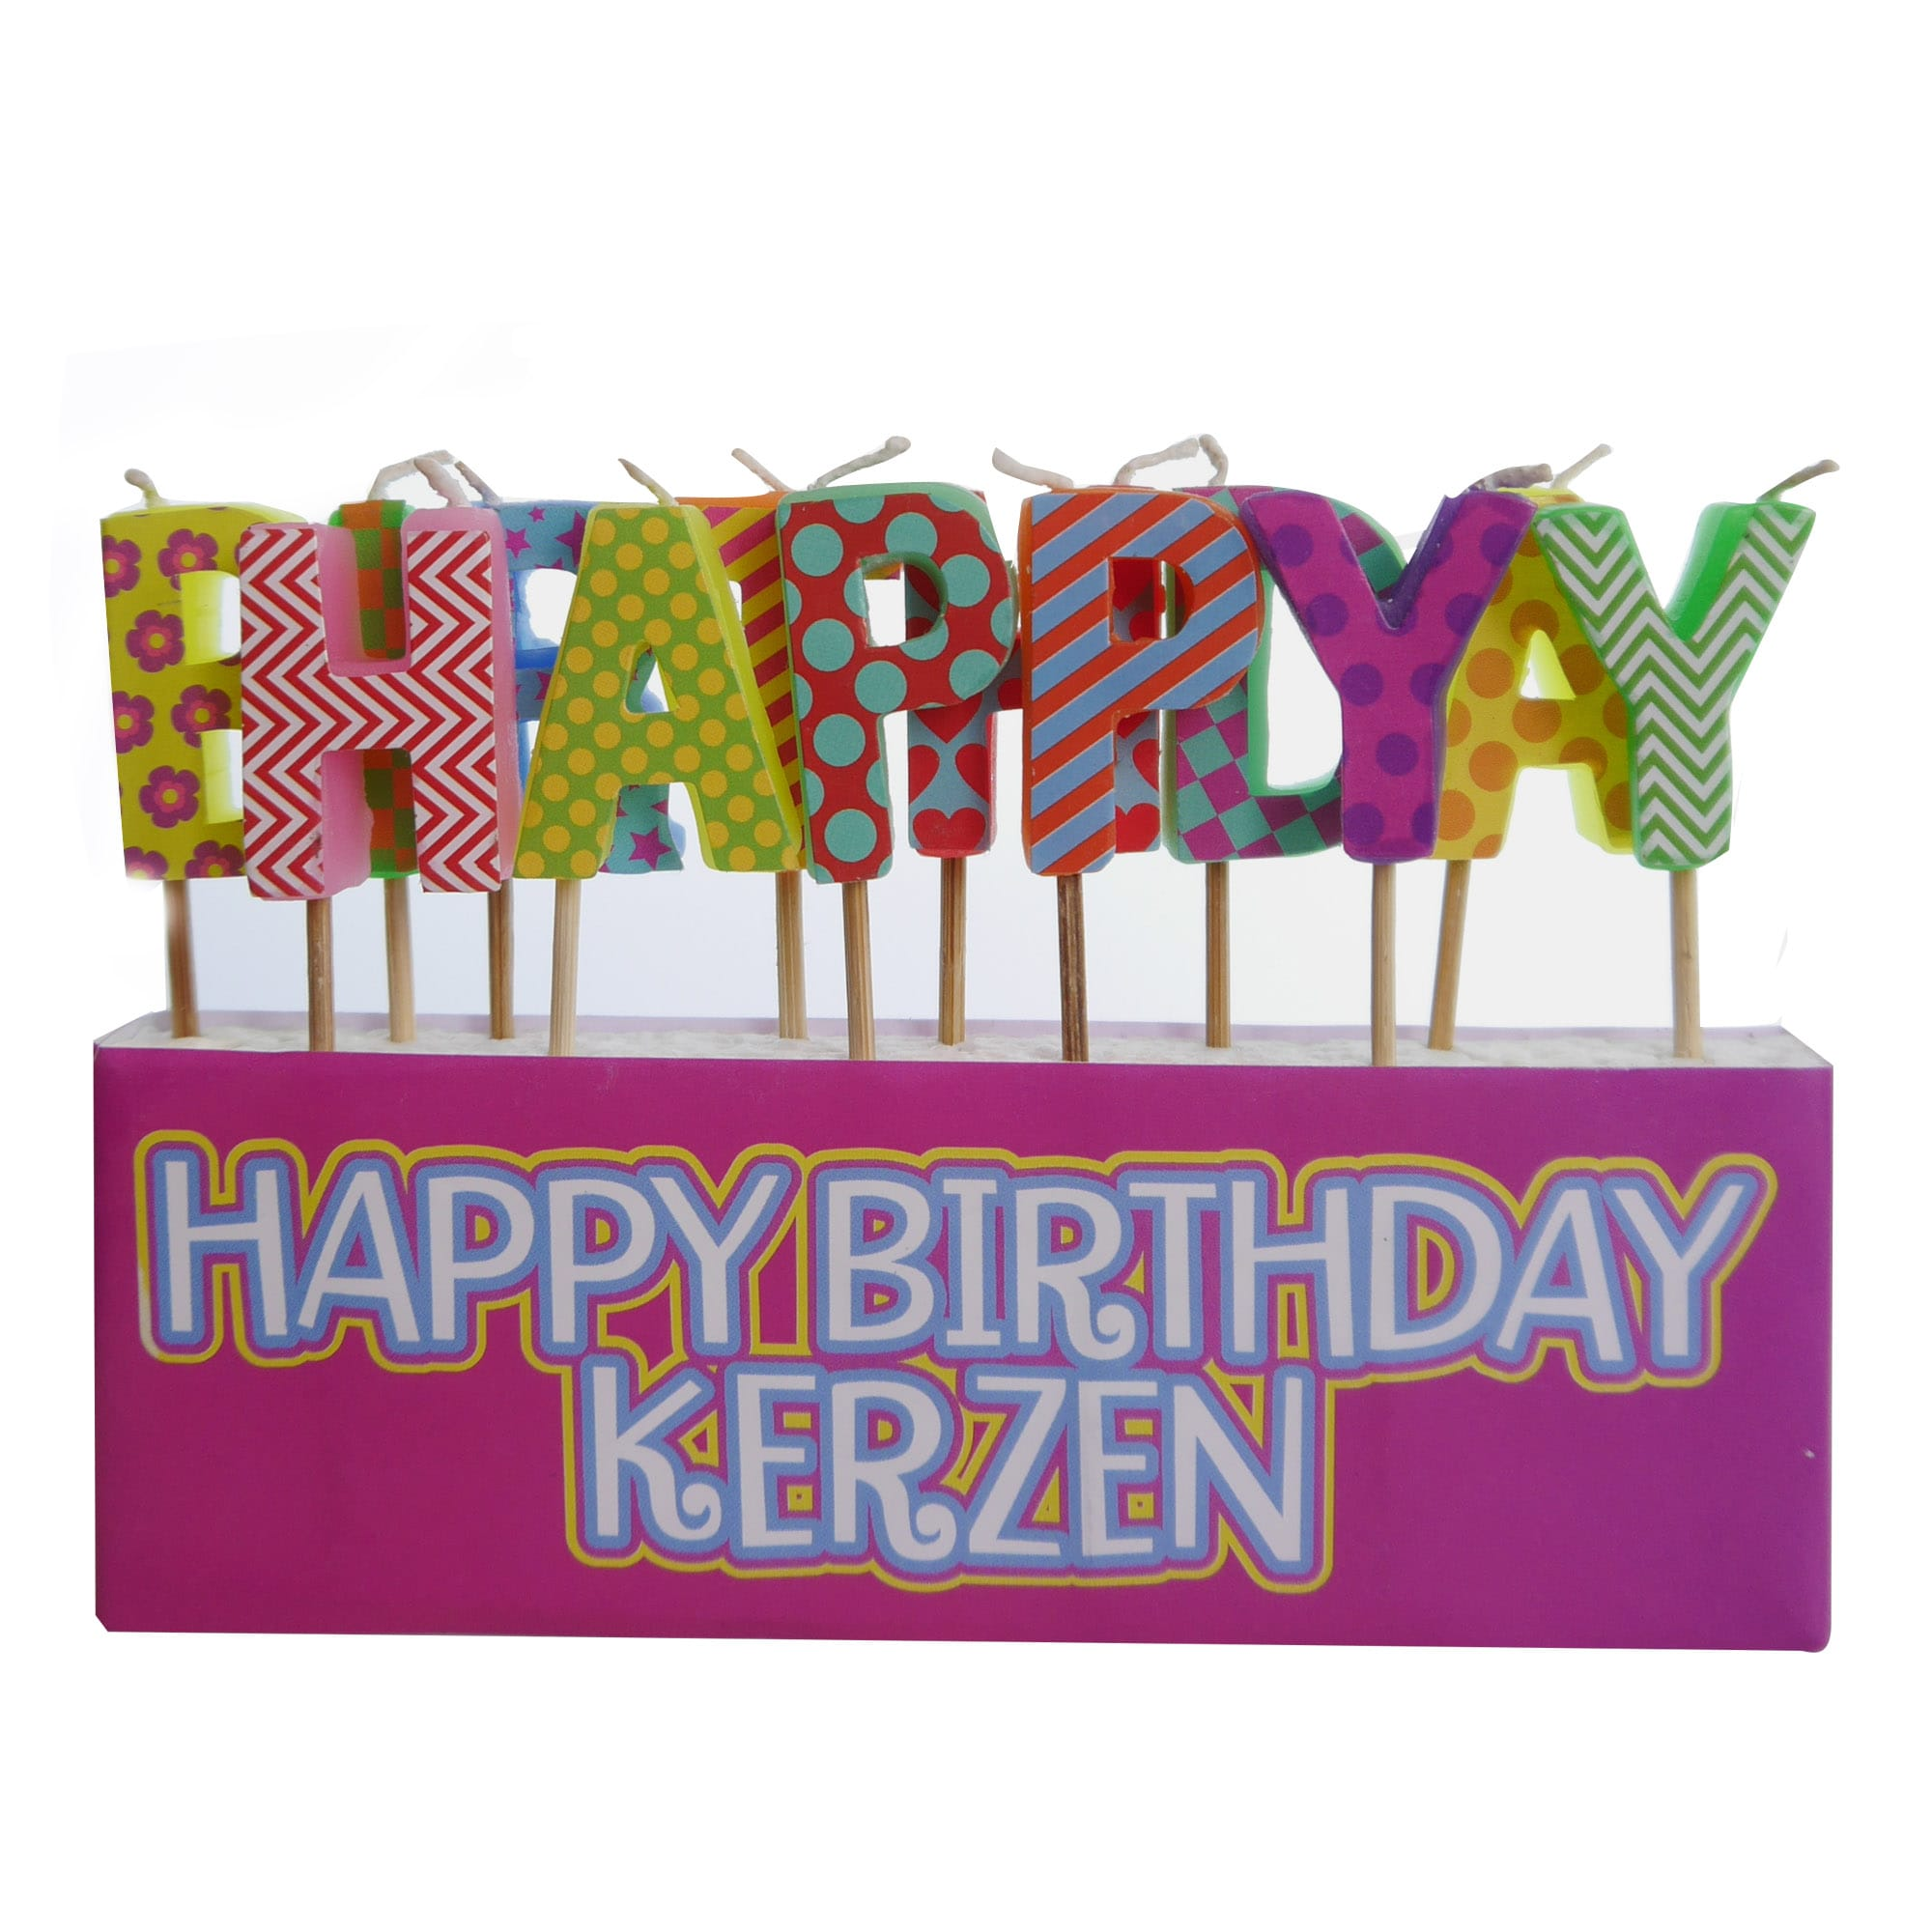 Kerzenbox Happy Birthday